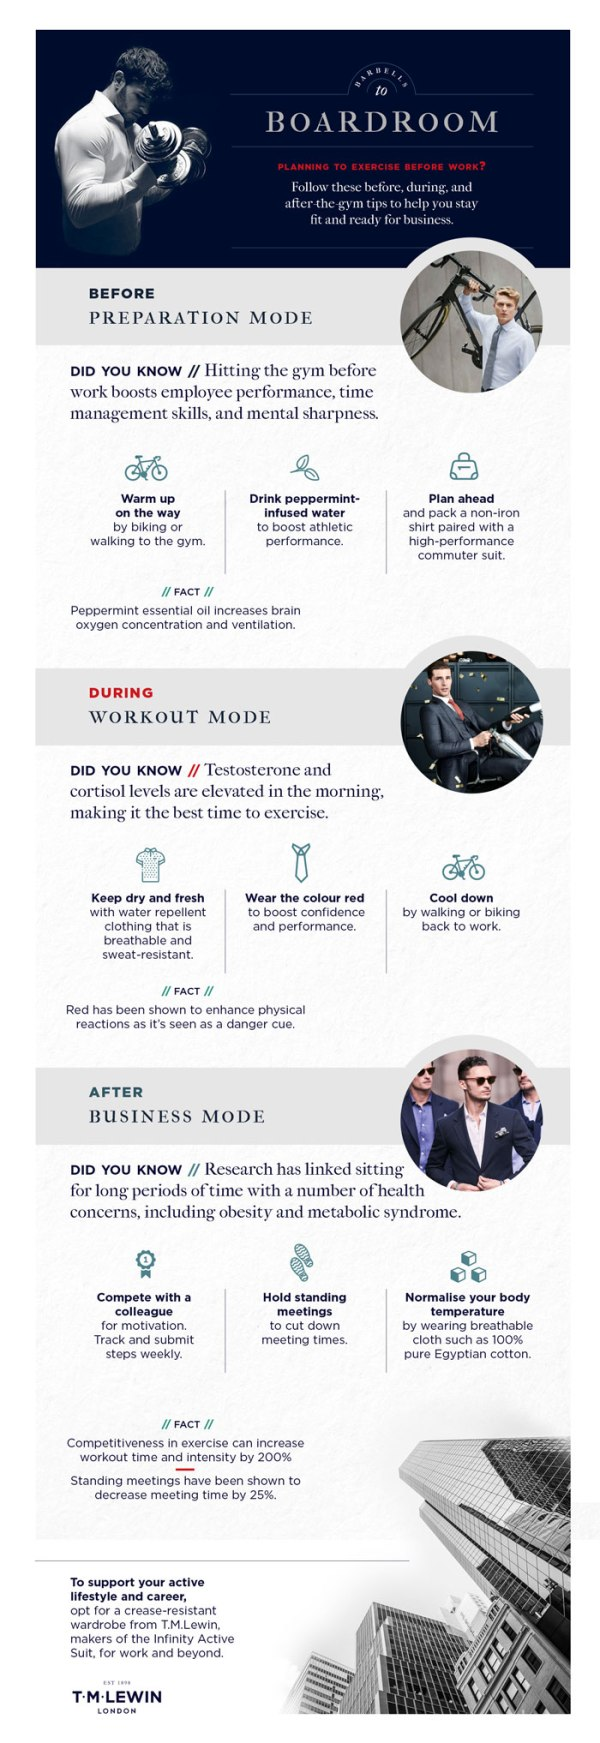 The Greenwich Mummy Blog   TM Lewin Barbells to Boardroom infographic